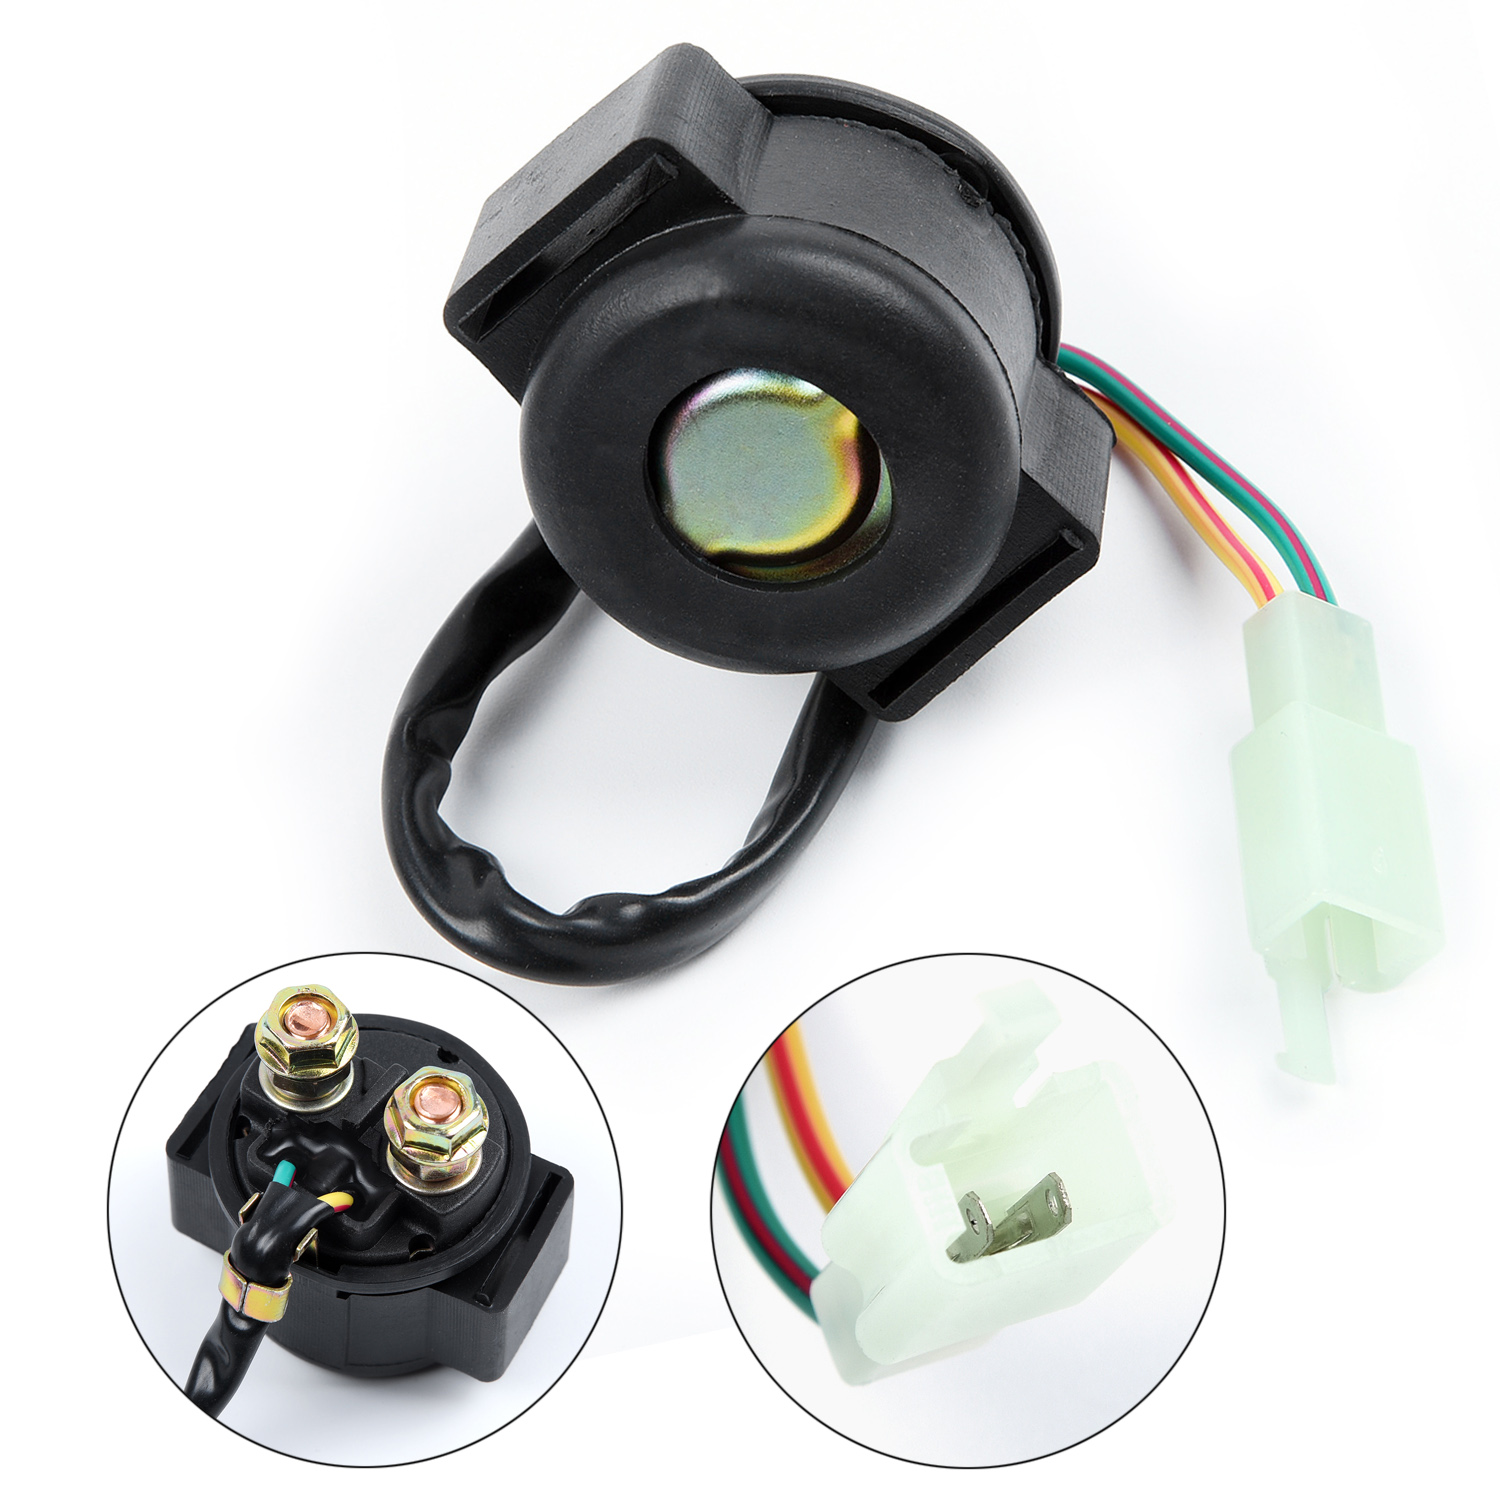 parts ahl starter solenoid relay for honda trx300 fourtrax 300 1988 2008 motorcycle powersports [ 1500 x 1500 Pixel ]